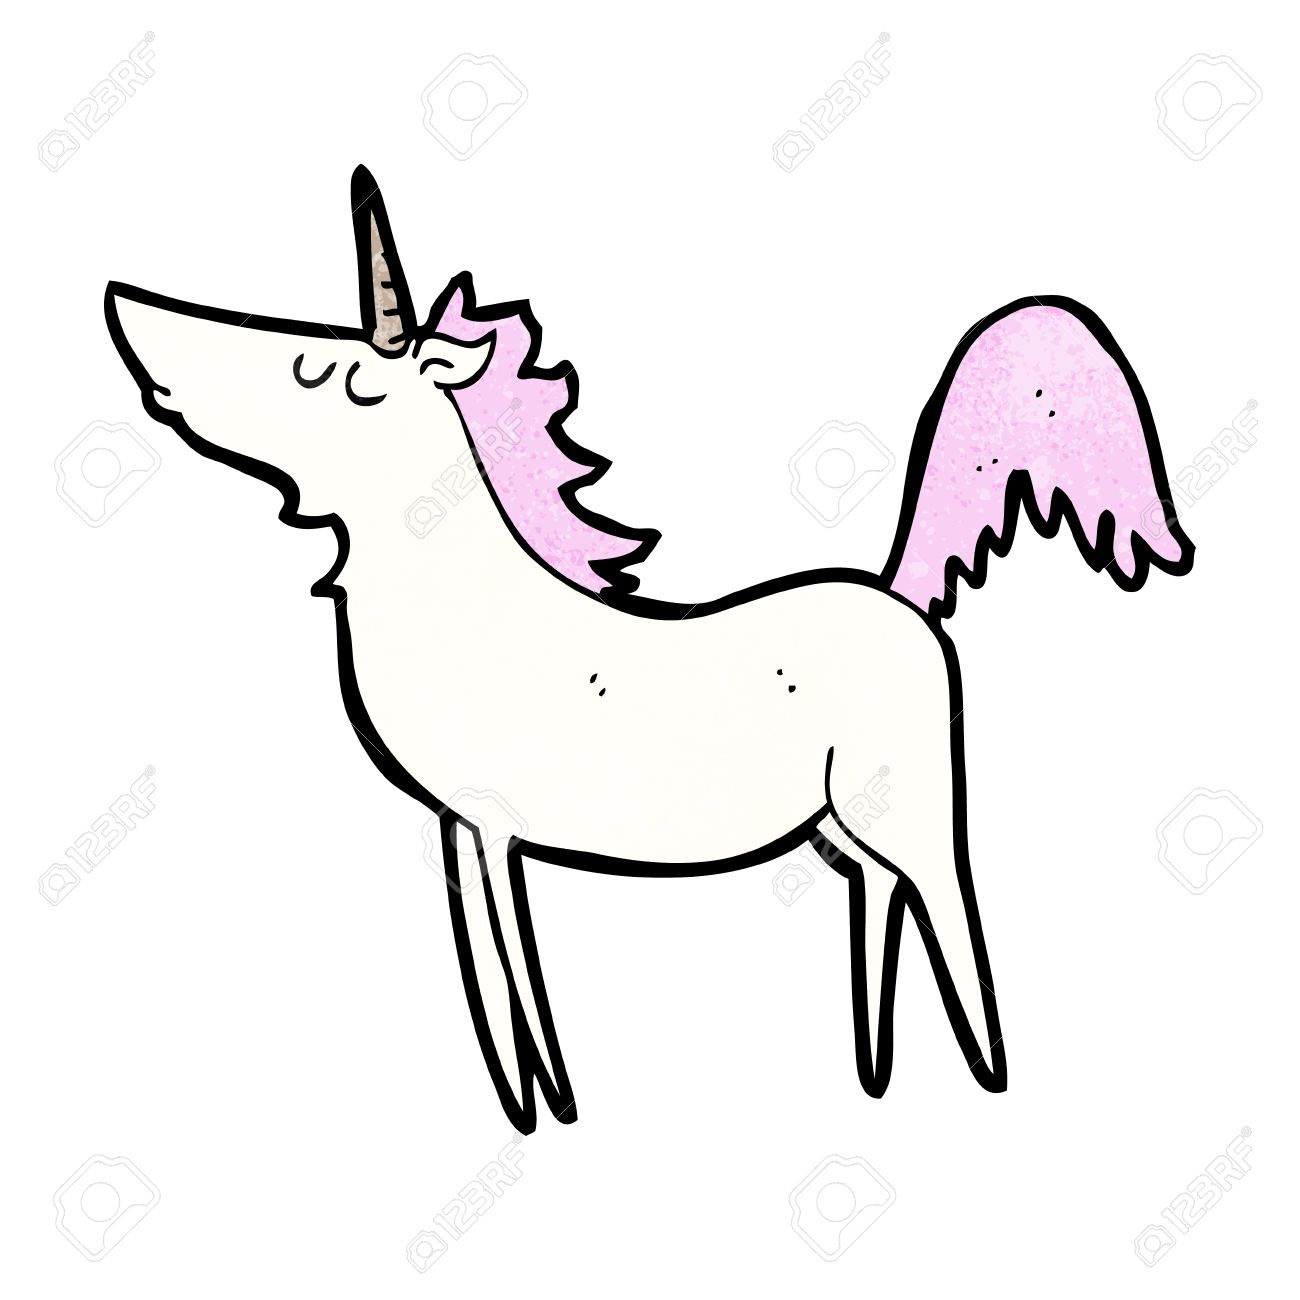 cartoon unicorn royalty free cliparts vectors and stock